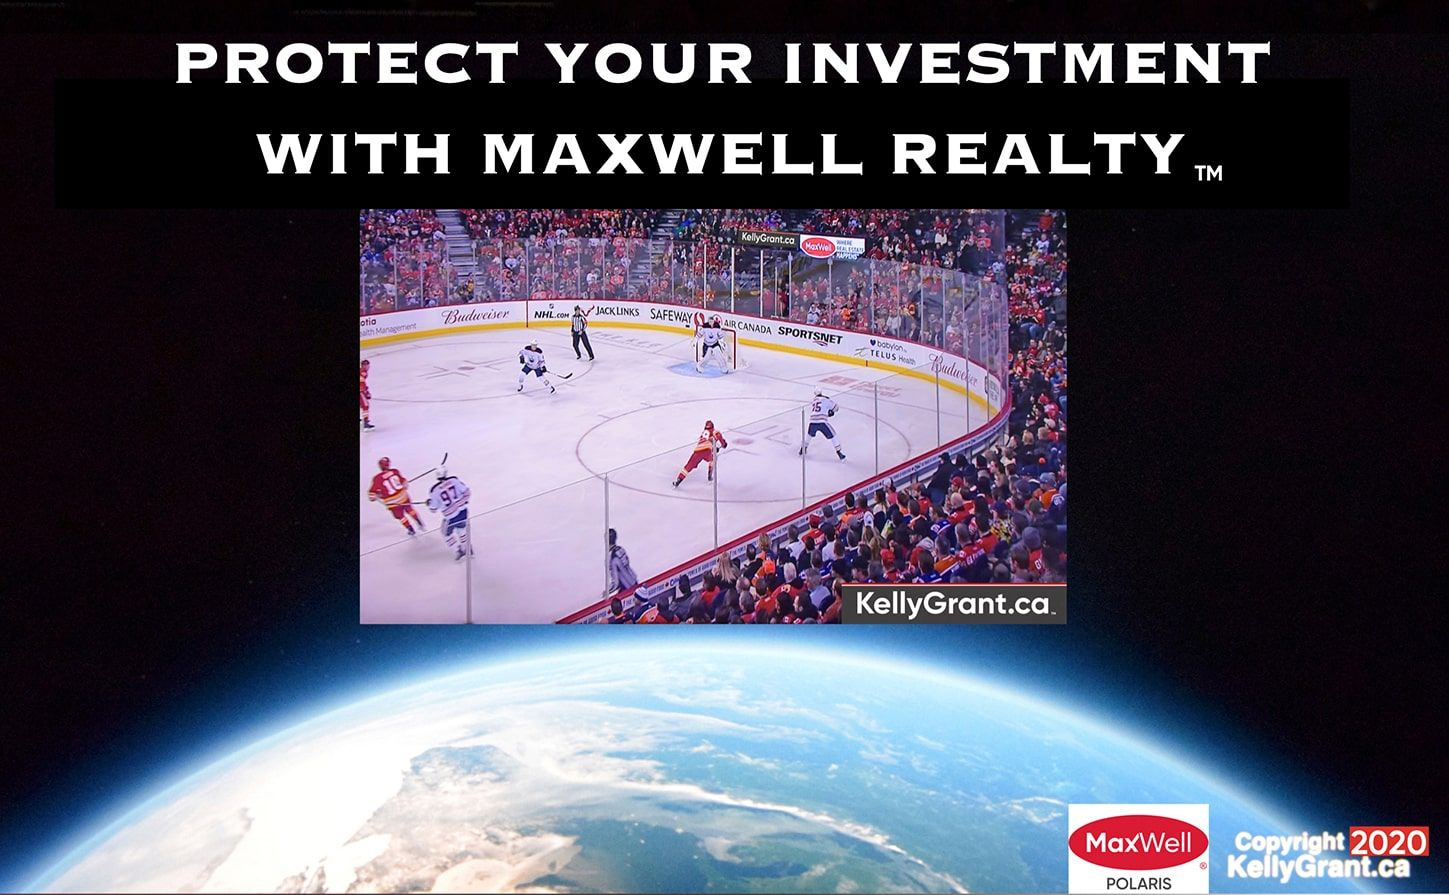 #44-KG MaxWell Protect Your Investment.jpg